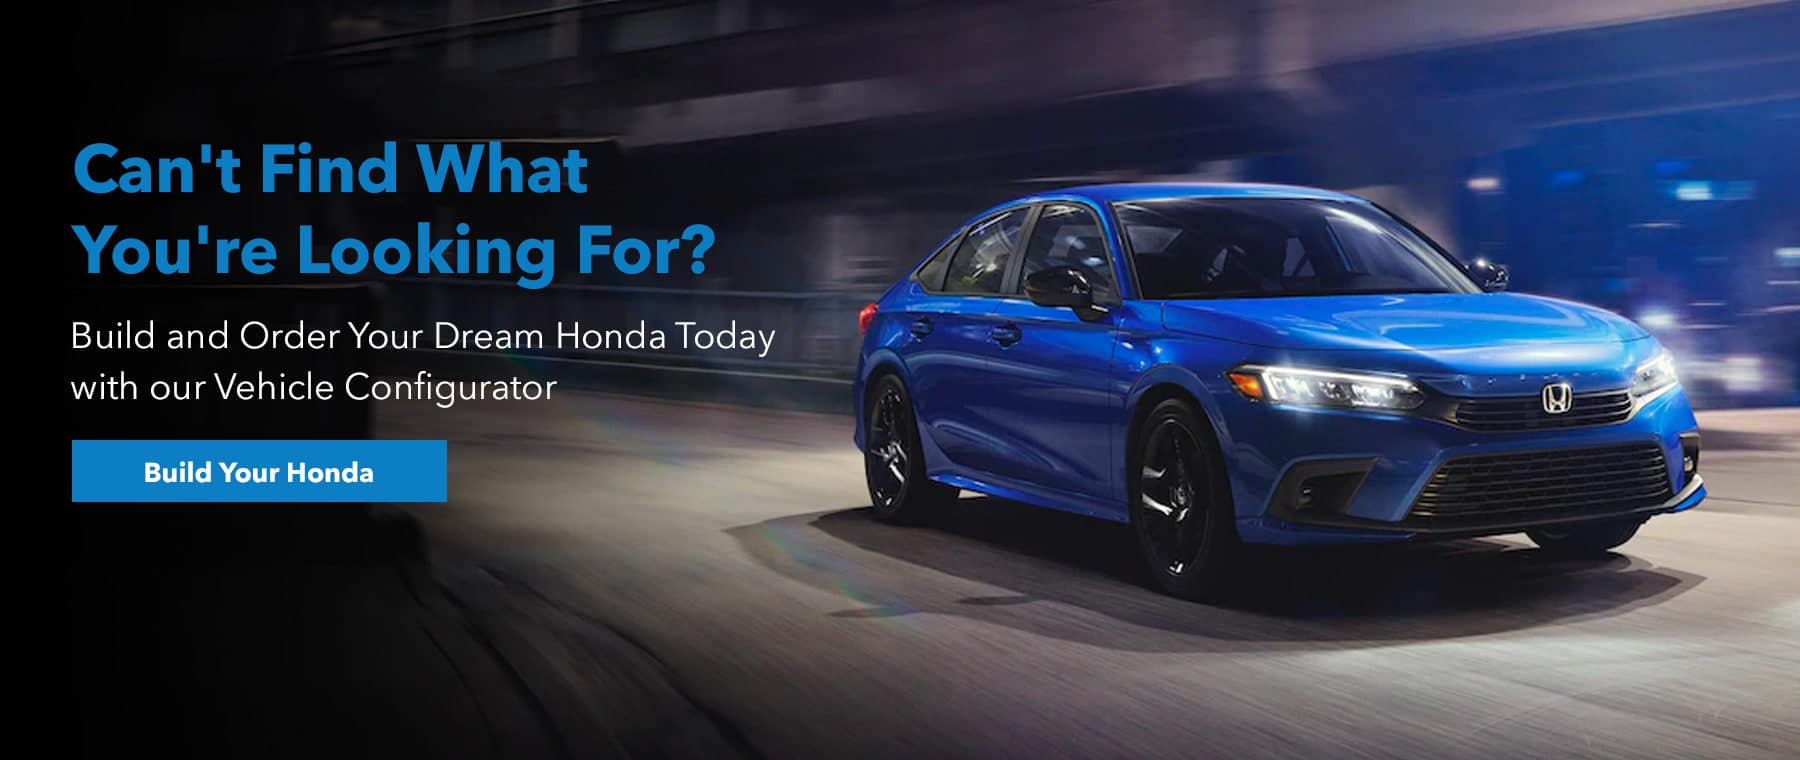 Can't Find What You're Looking For? Build Your Dream Honda Today with our Vehicle Configurator